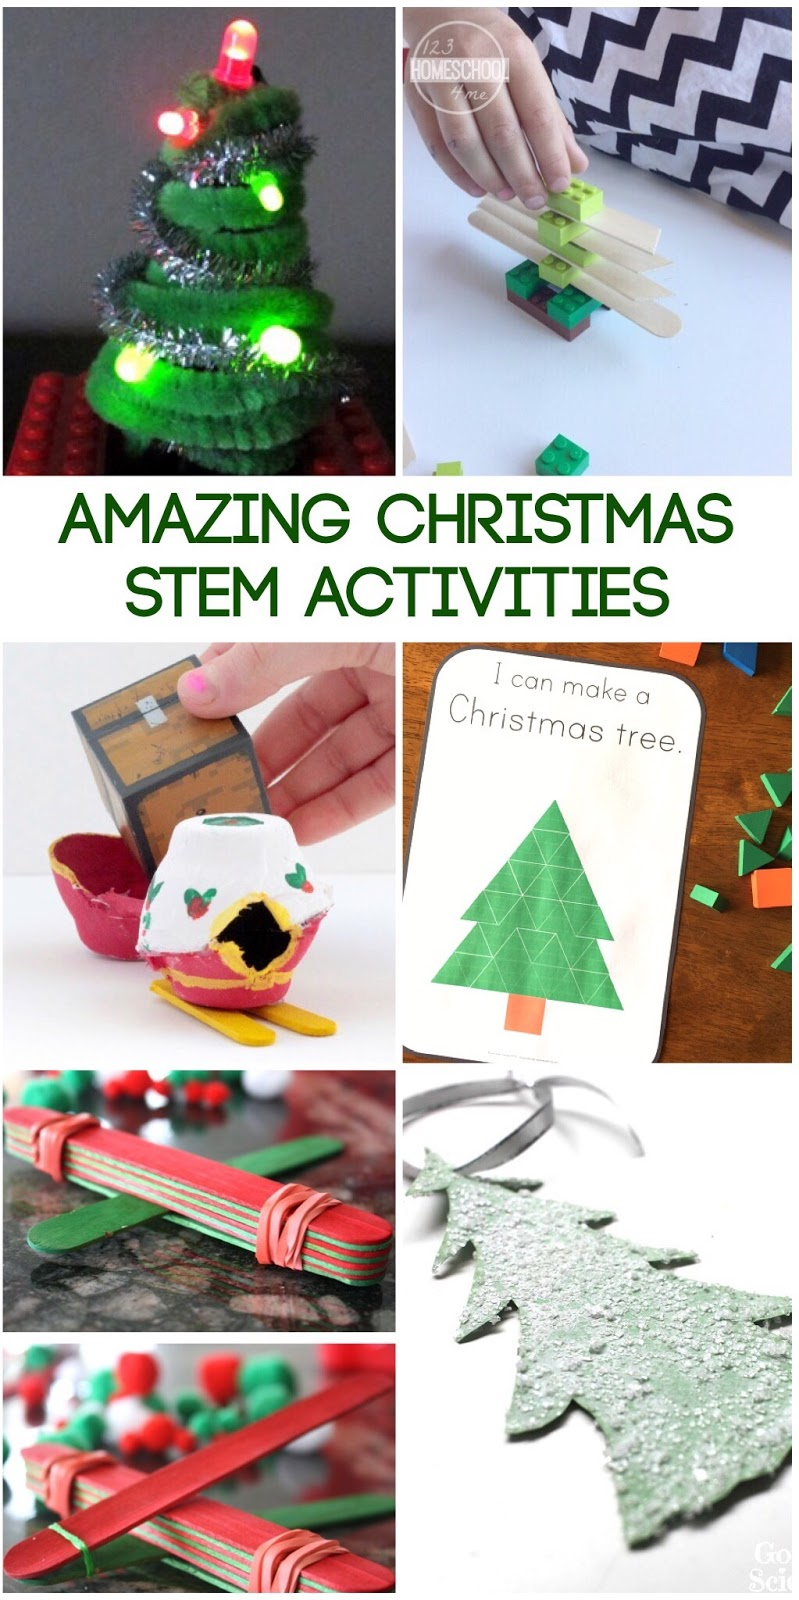 20 Amazing Christmas STEM Activities